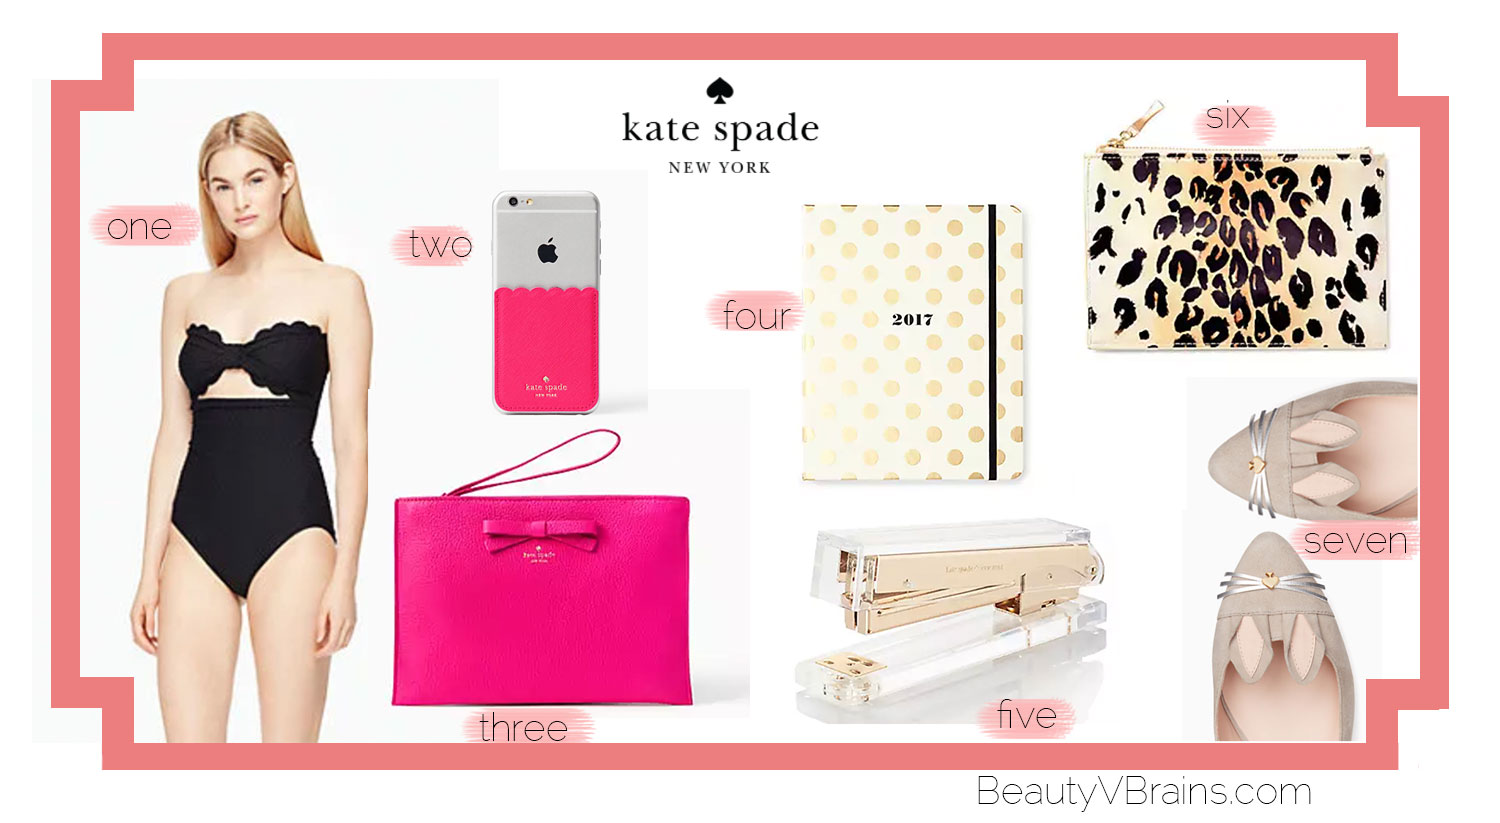 Kate Spade best Cyber Monday steals 2016